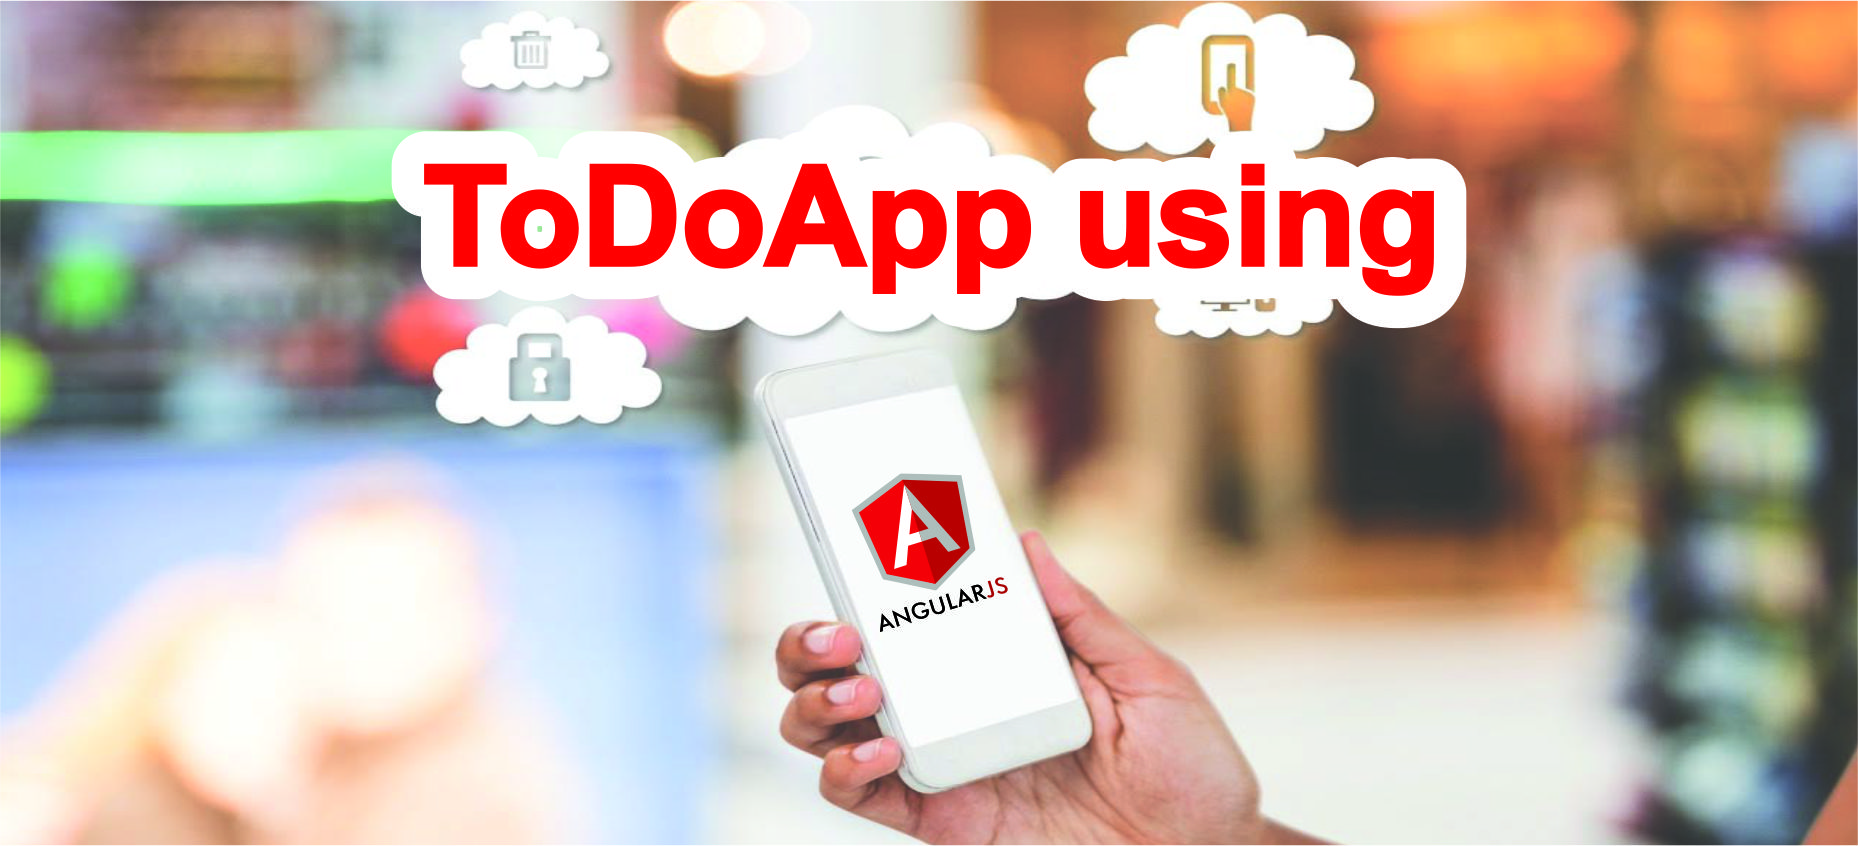 ToDoApp using AngularJS